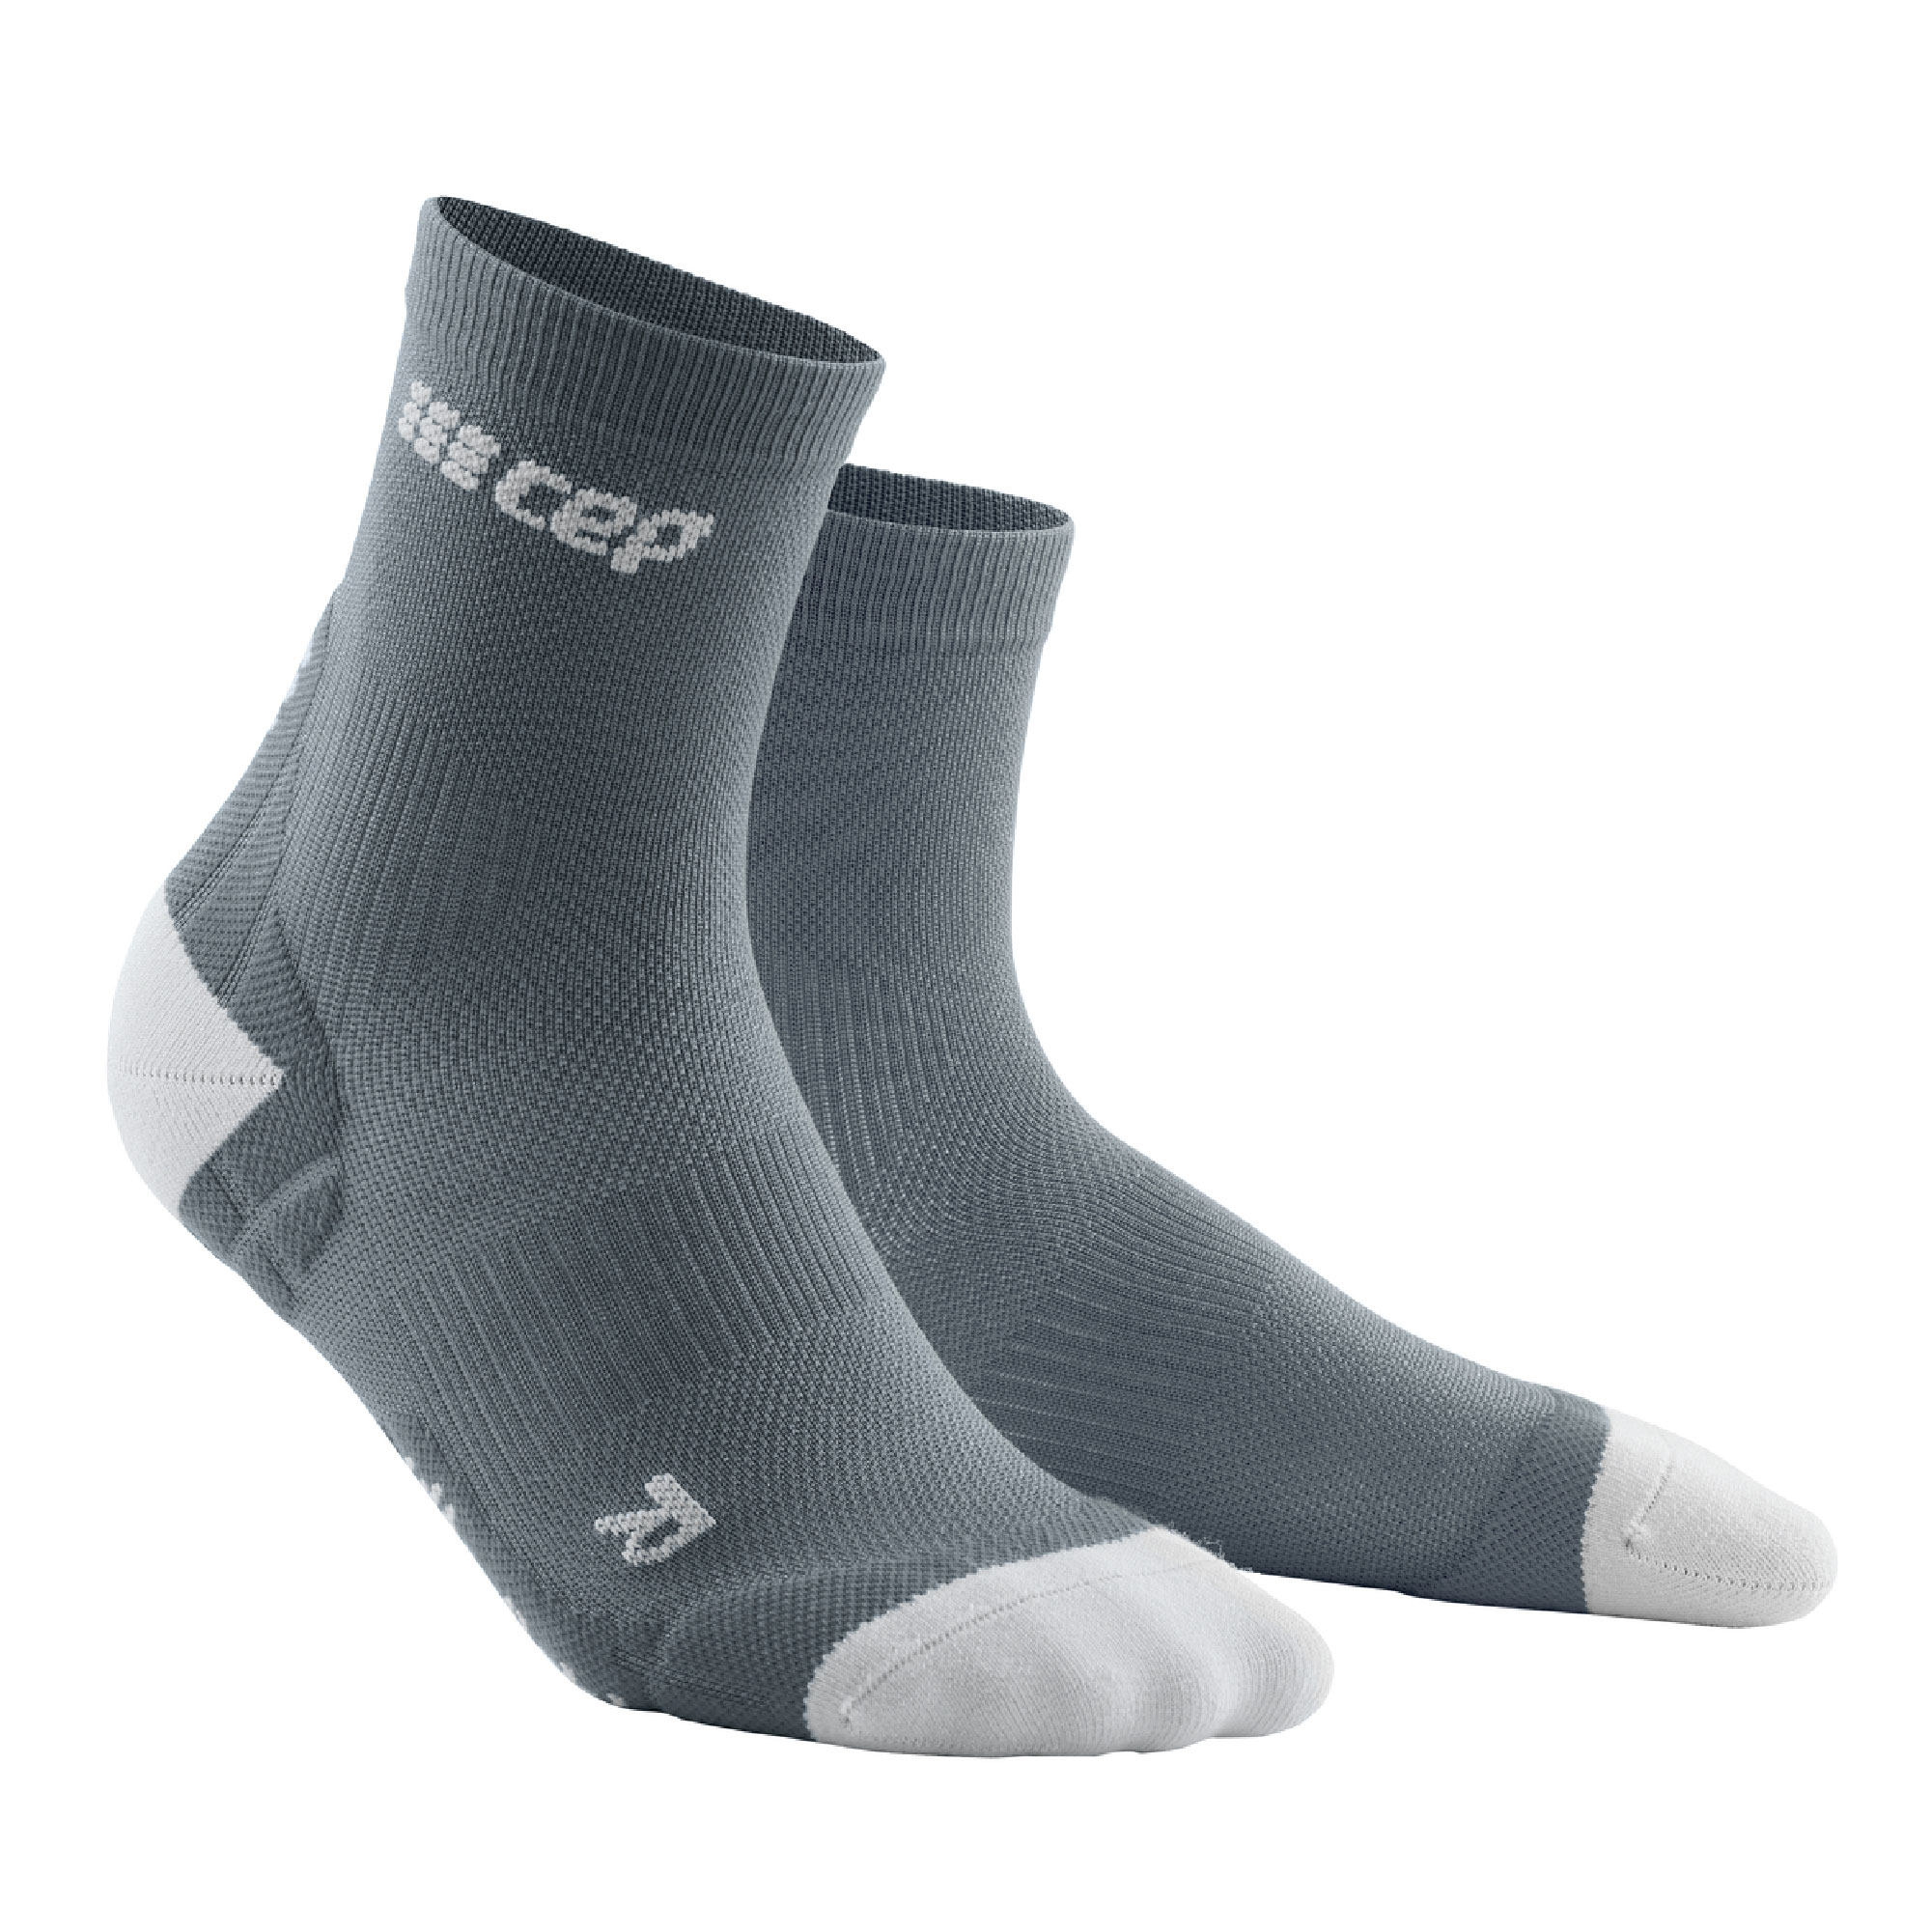 ULTRALIGHT SHORT SOCKS | MEN